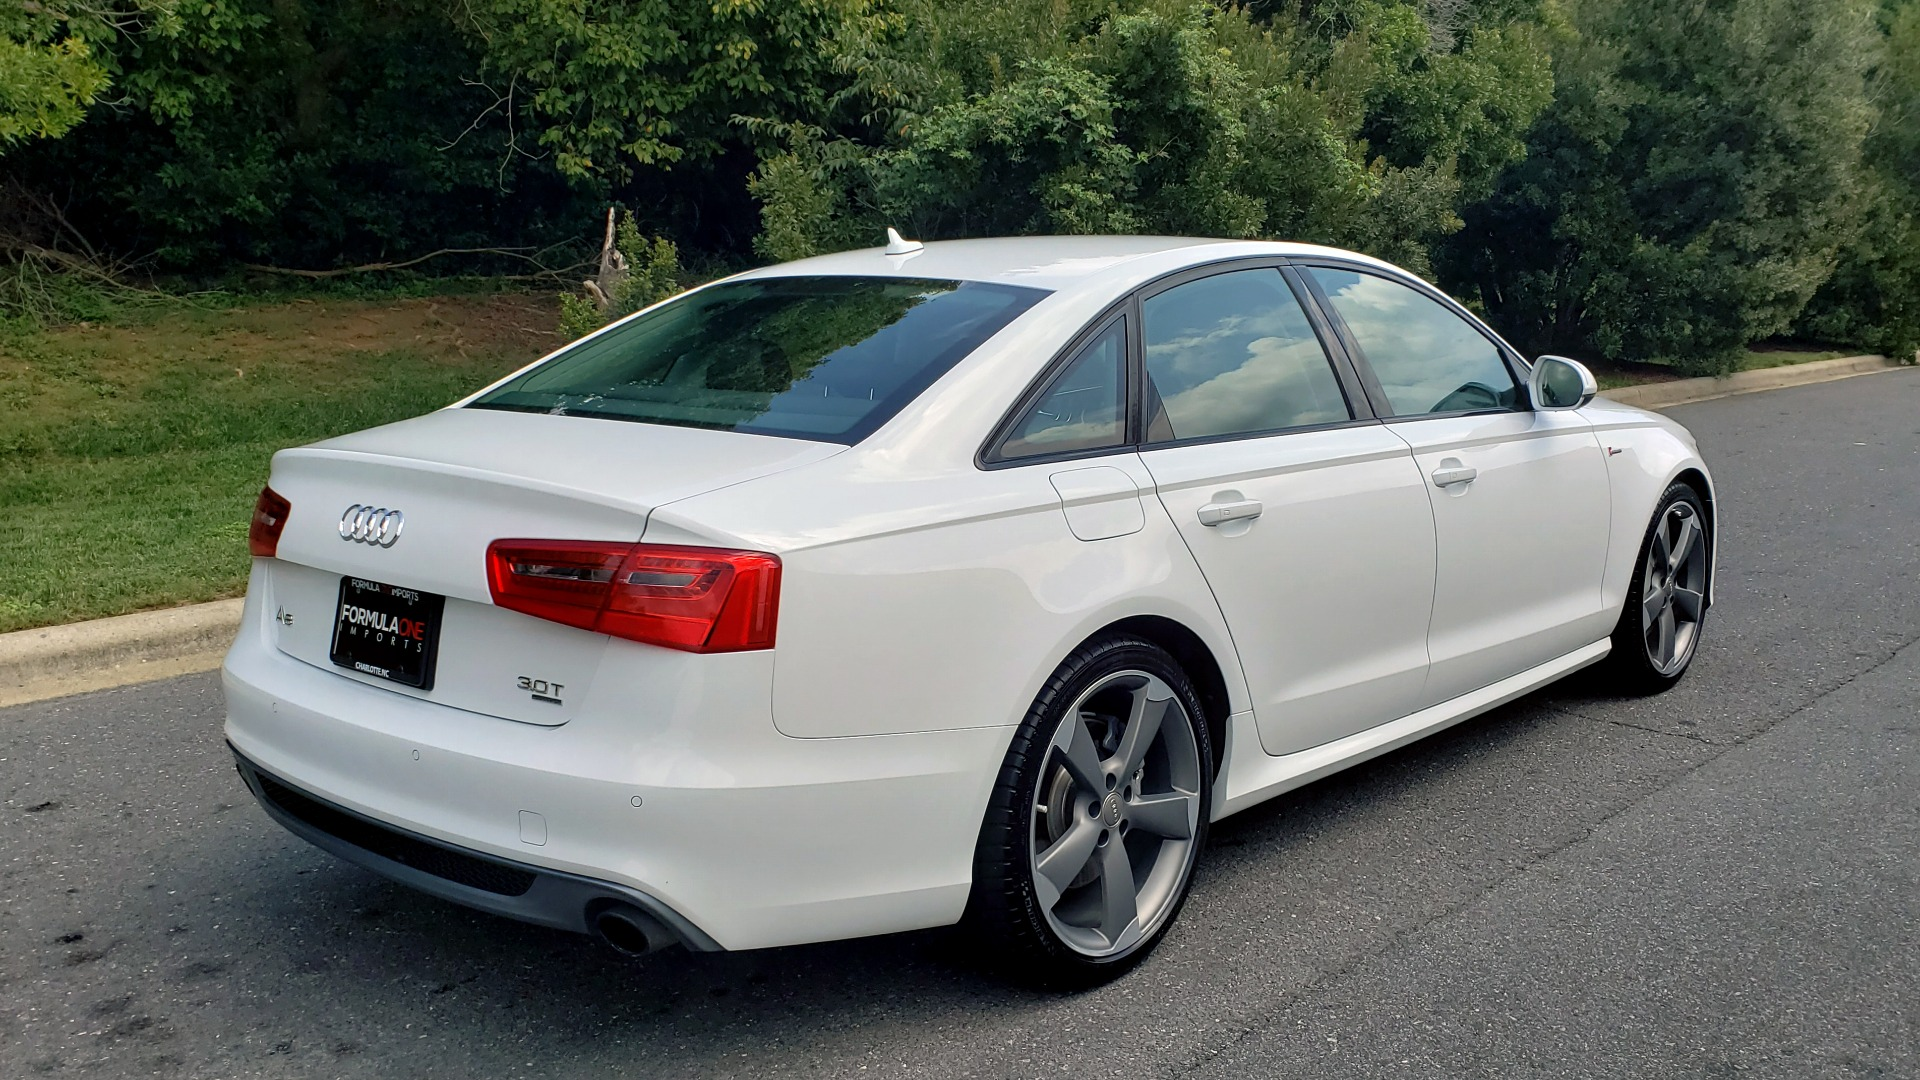 Used 2015 Audi A6 3.0T PRESTIGE / BLACK OPTIC / NAV / BOSE / SUNROOF / REARVIEW for sale Sold at Formula Imports in Charlotte NC 28227 8